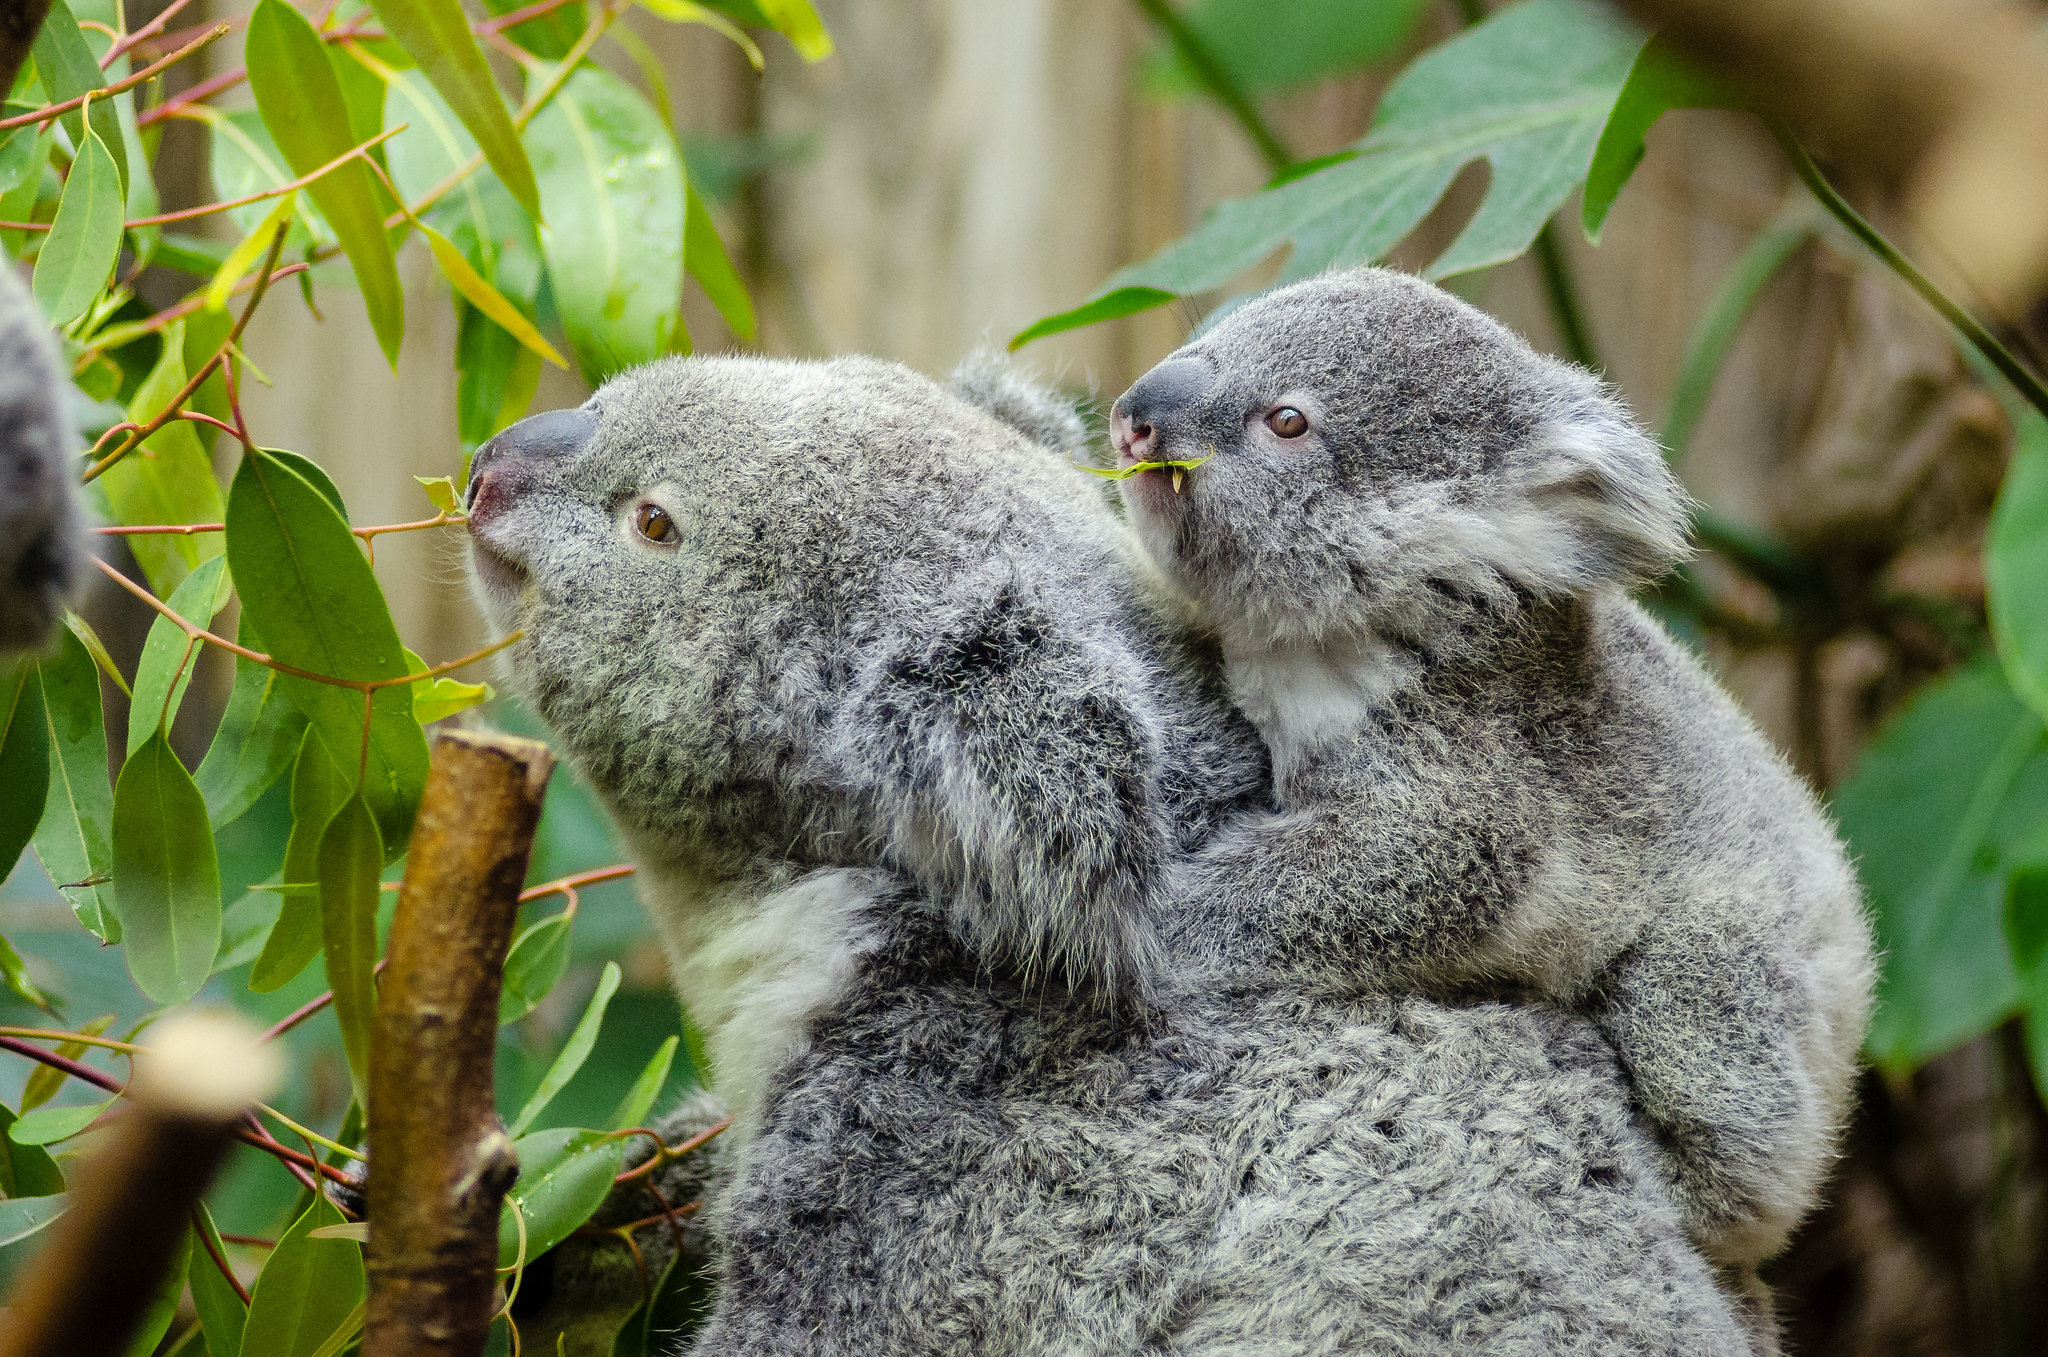 Koalas have a chlamydia problem, so scientists launch vaccine trial